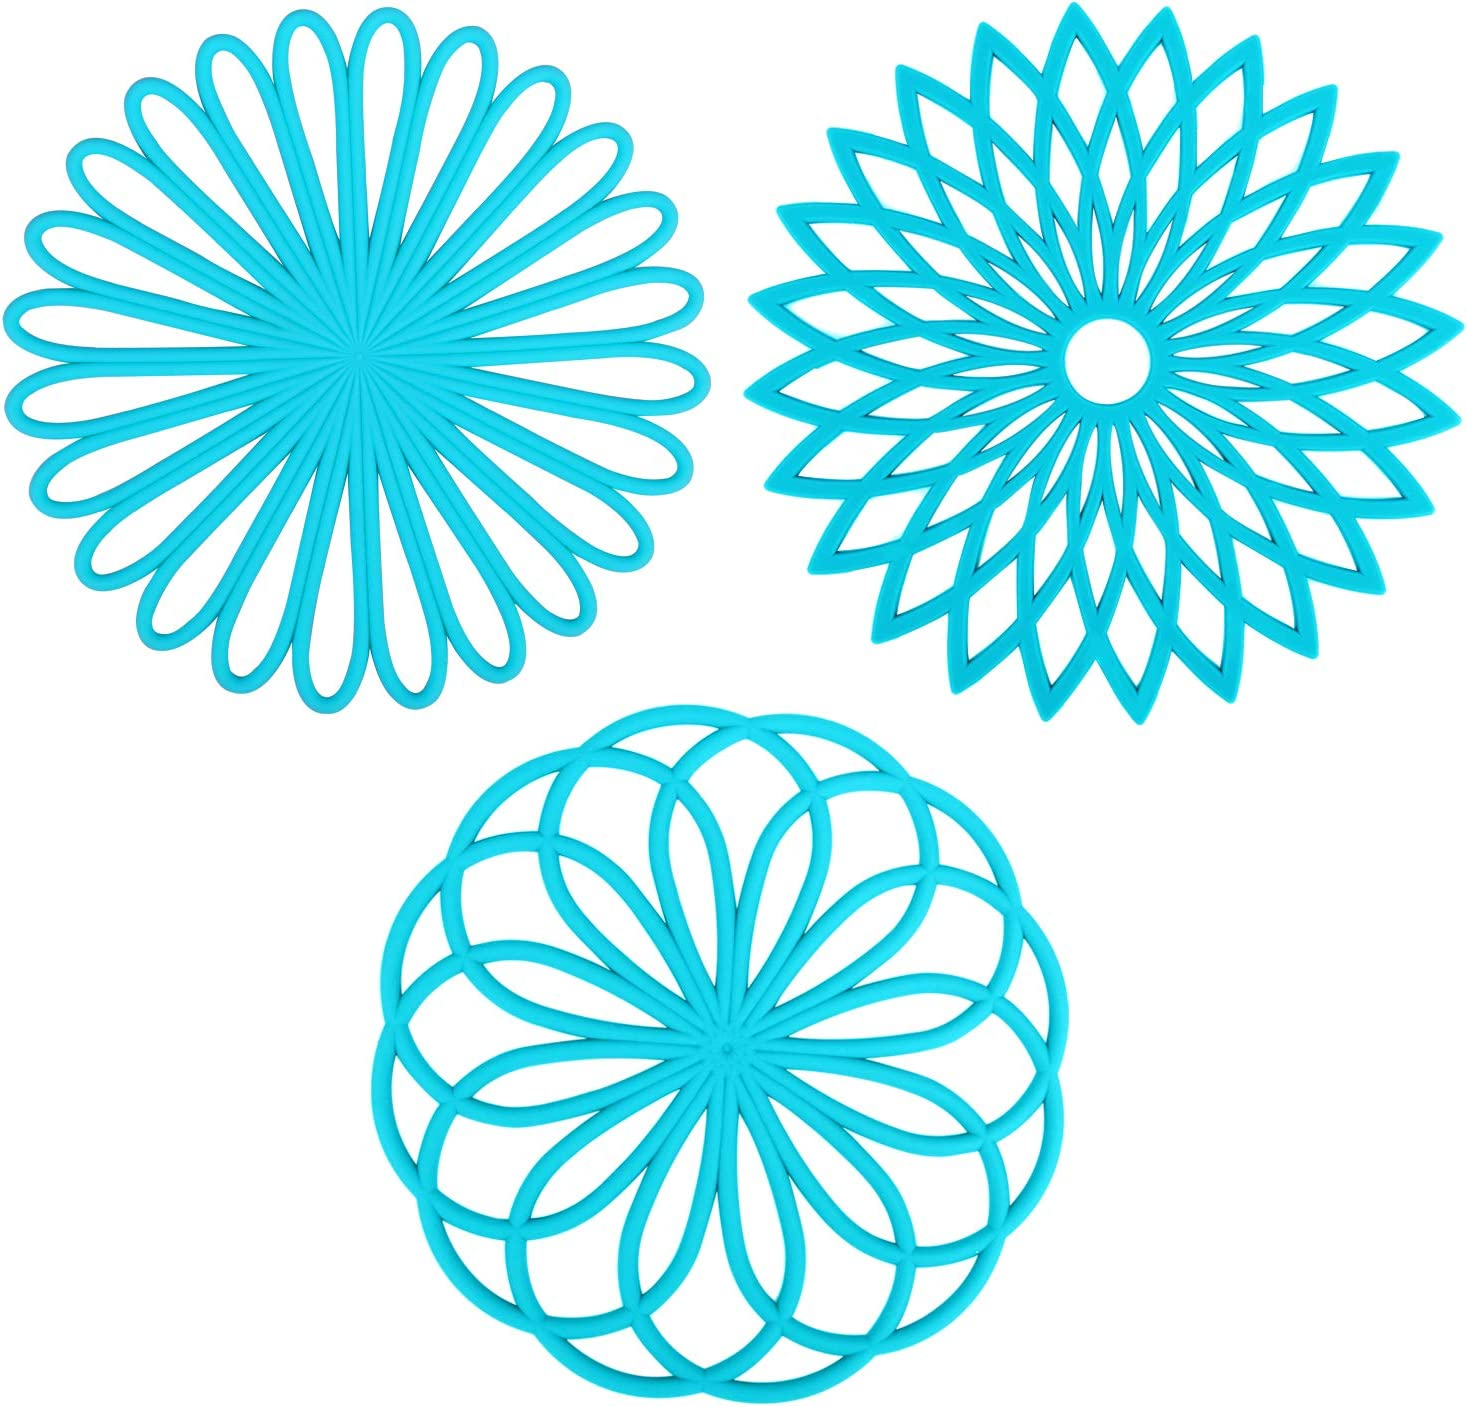 Multi-functional Silicone Trivets for hot dishes and Cookware,Flexible Carved trivets Mats for hot pots and pans - Durable Non Slip Coasters (Set of 3,Light Blue)